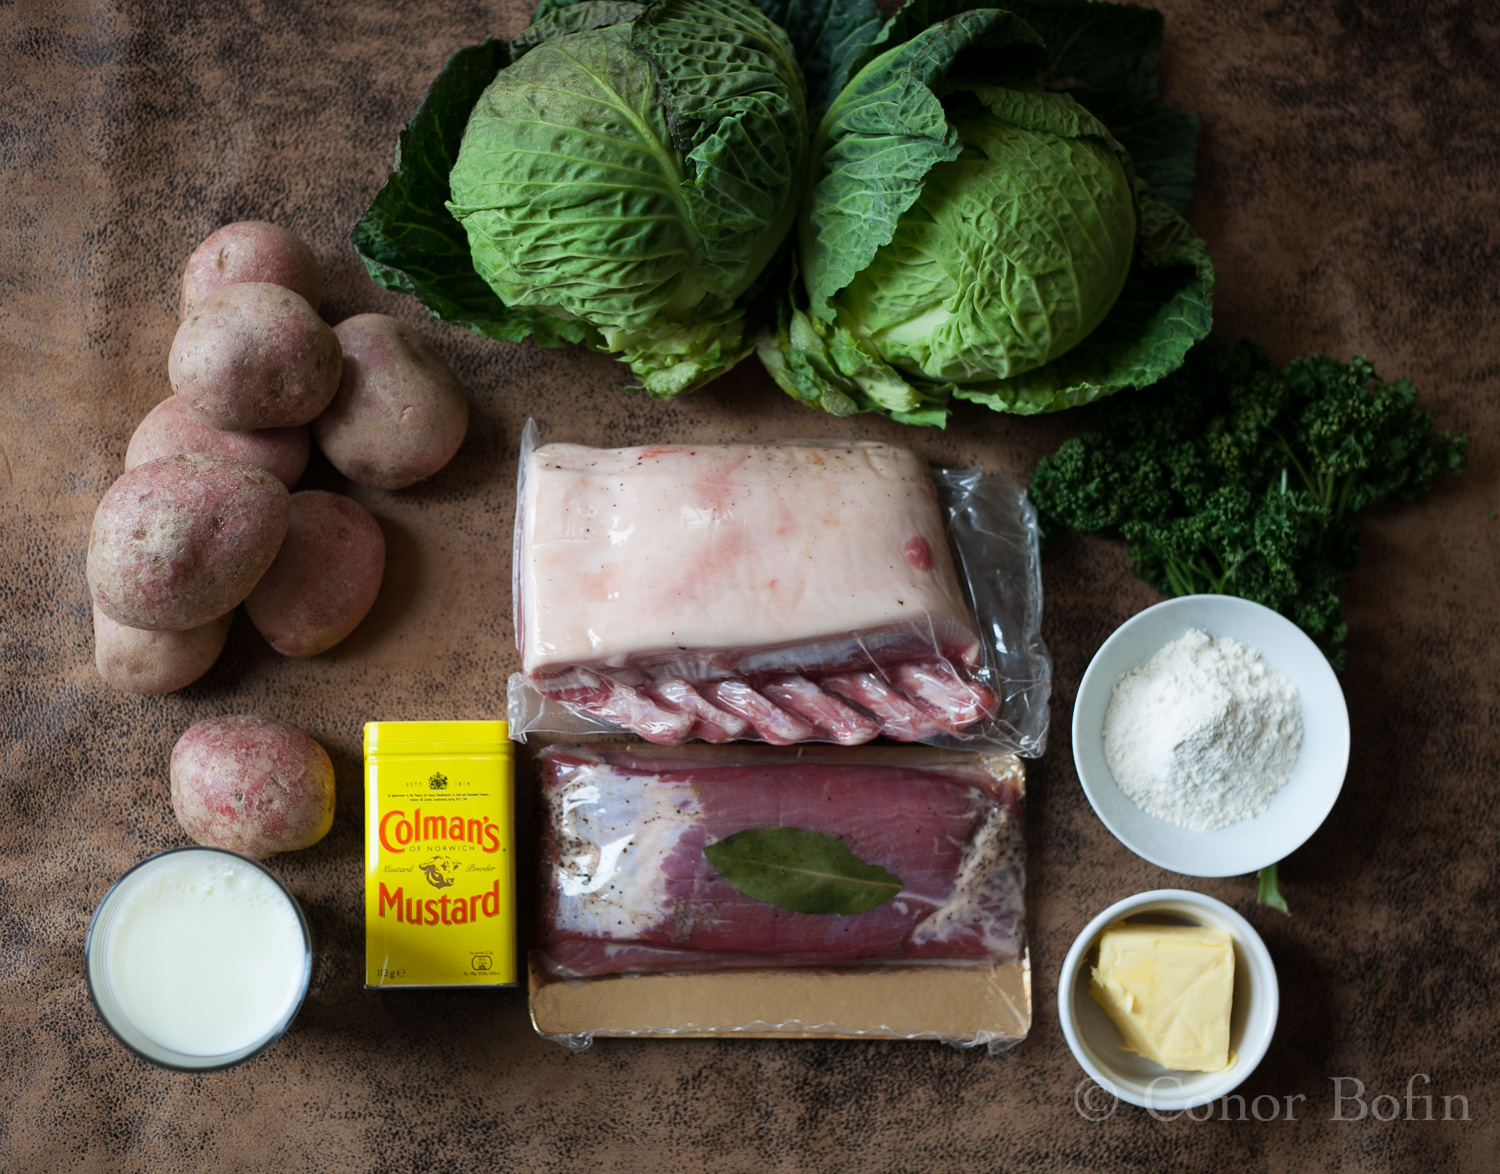 I was very happy with this ingredients shot - Taken standing on a chair in the kitchen.